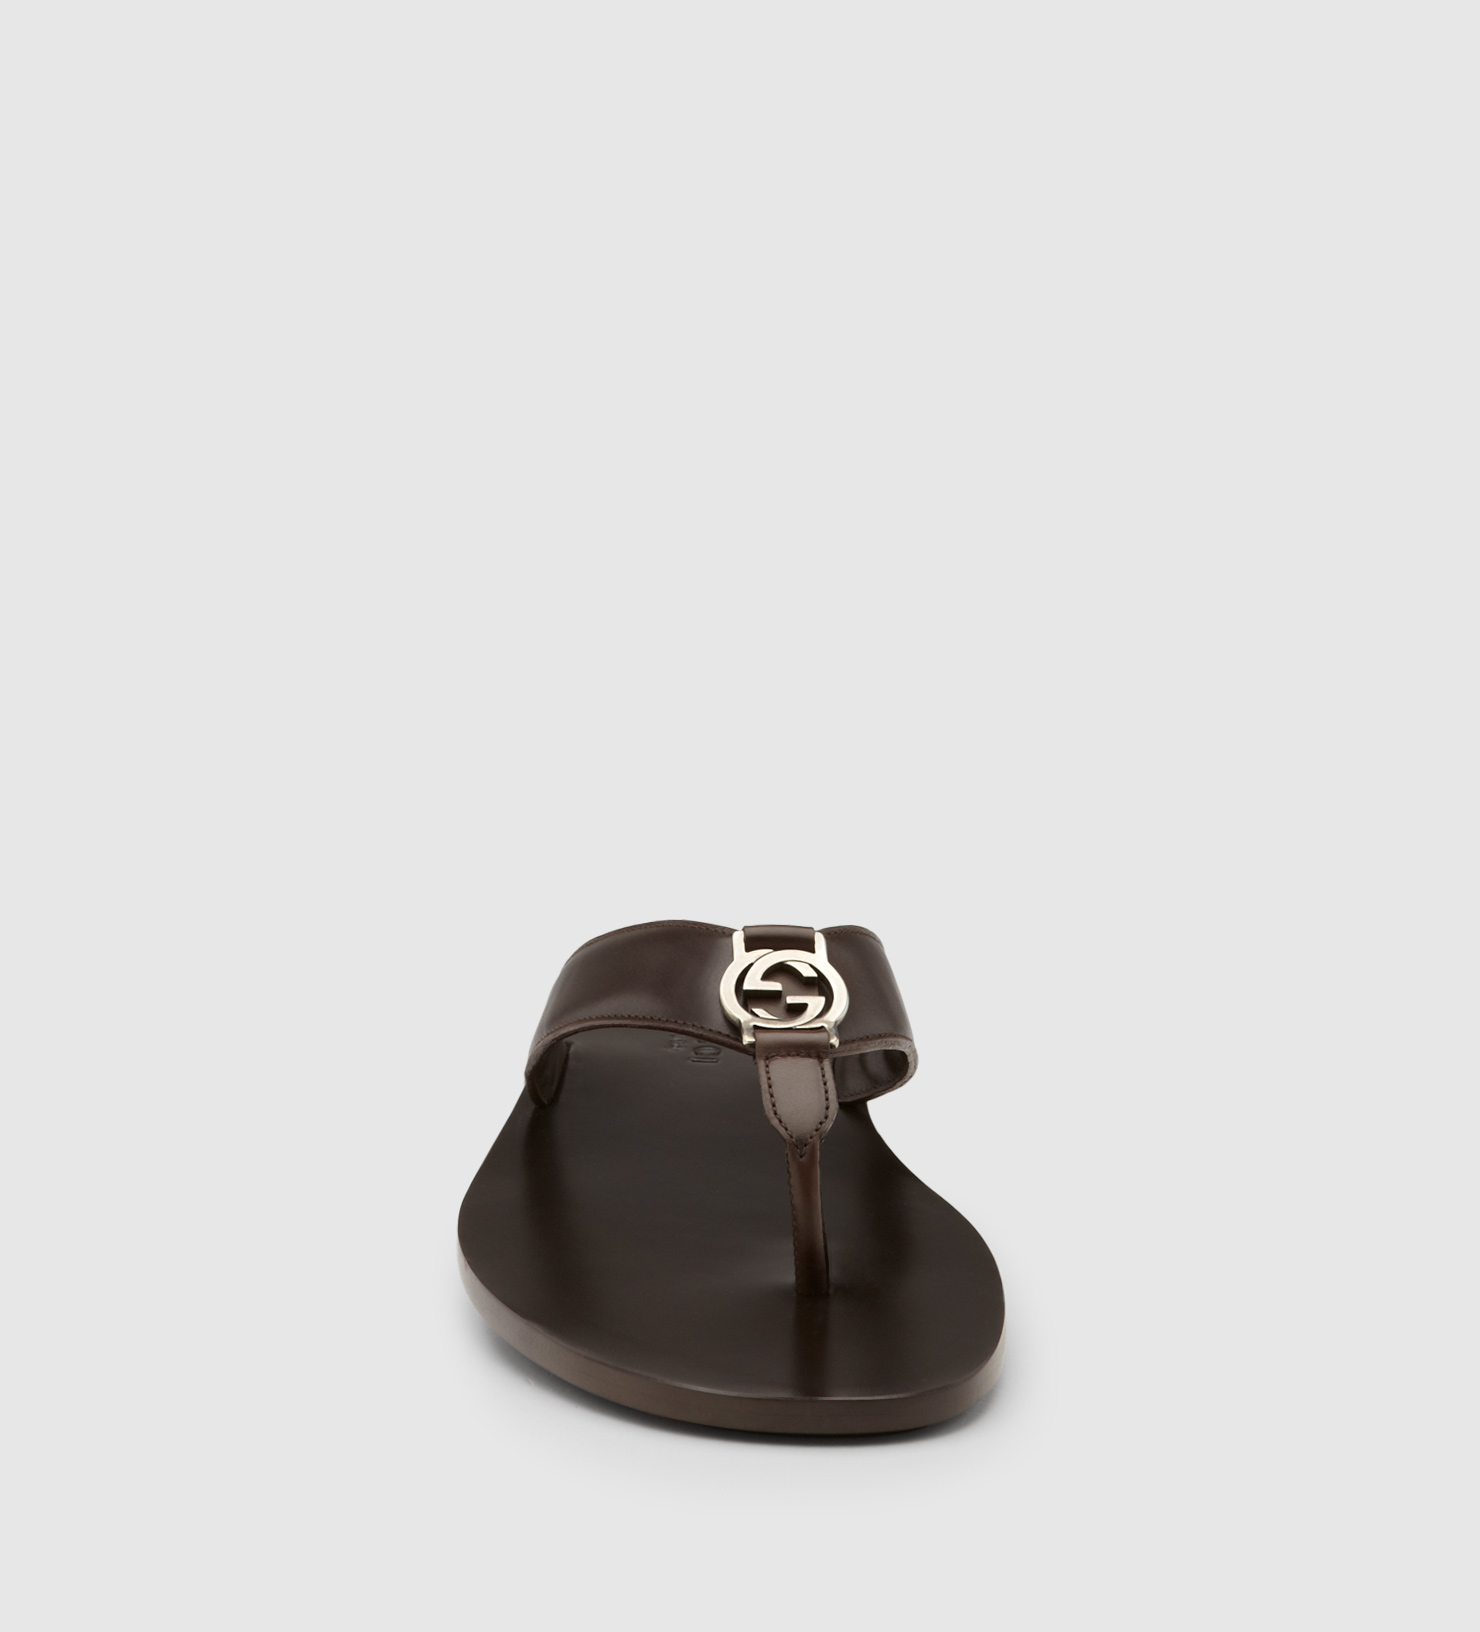 228ff5abd Lyst - Gucci Brown Leather Thong Sandal in Brown